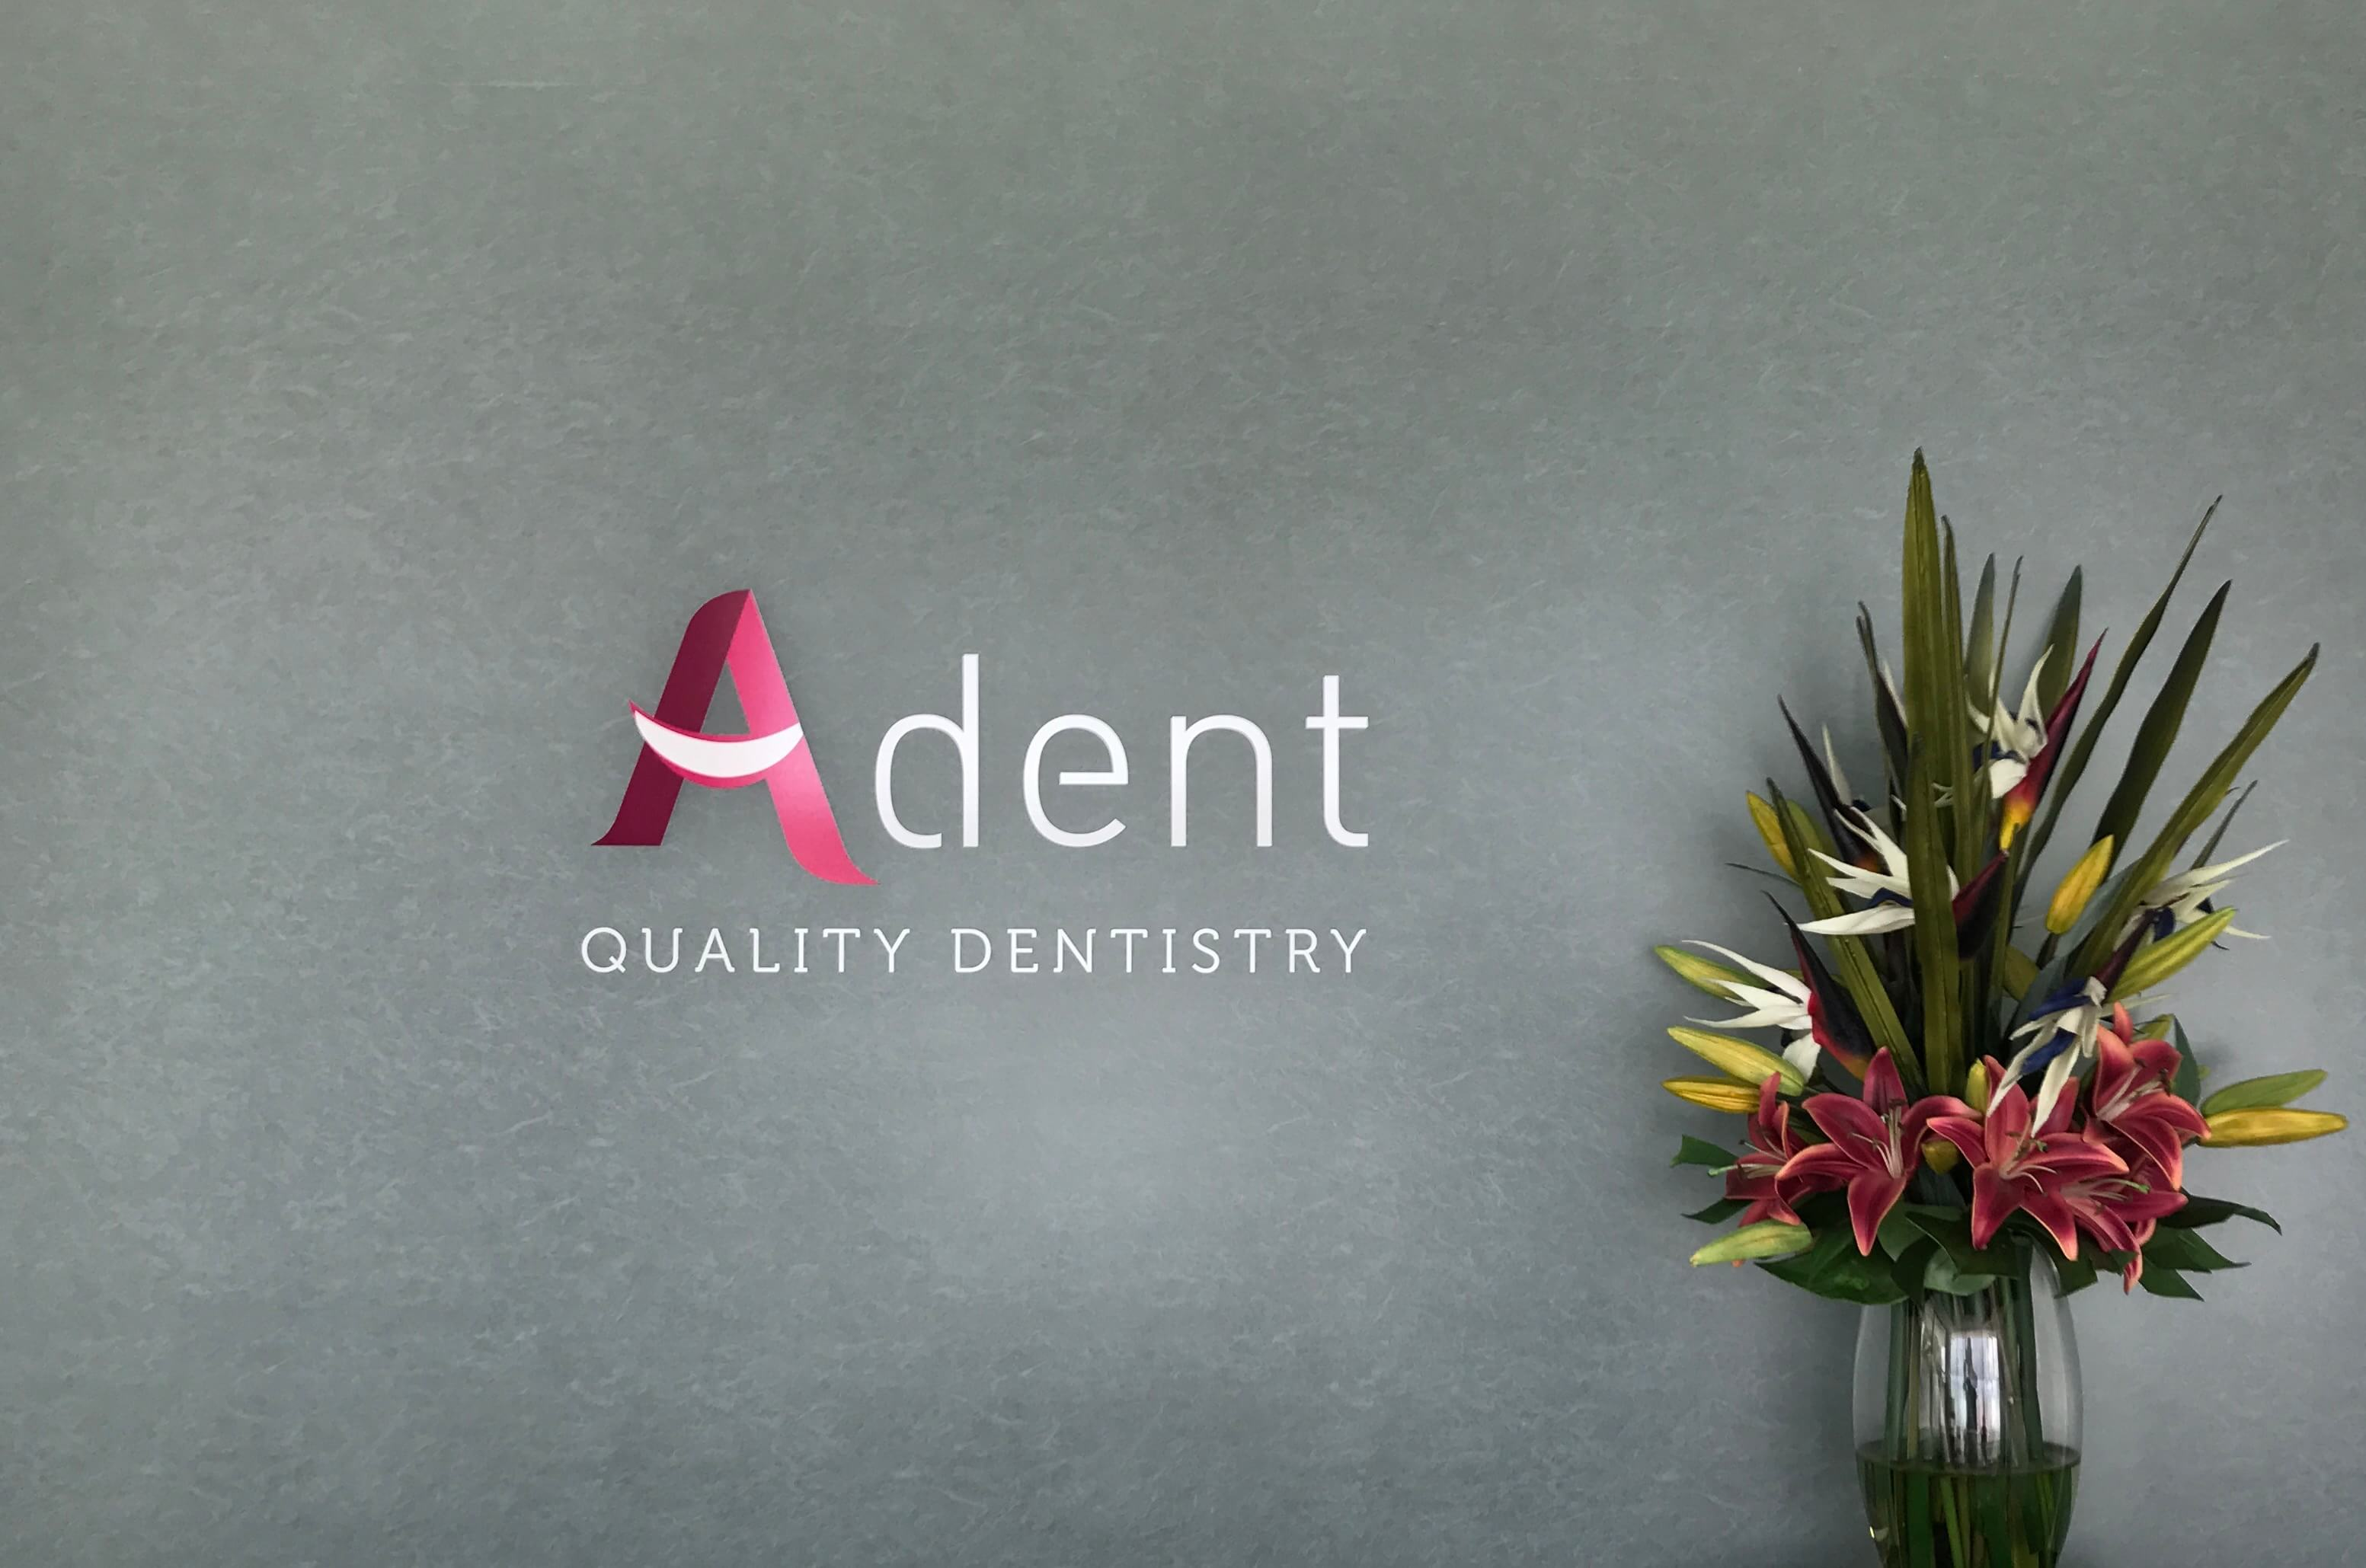 The technology behind Adent Health